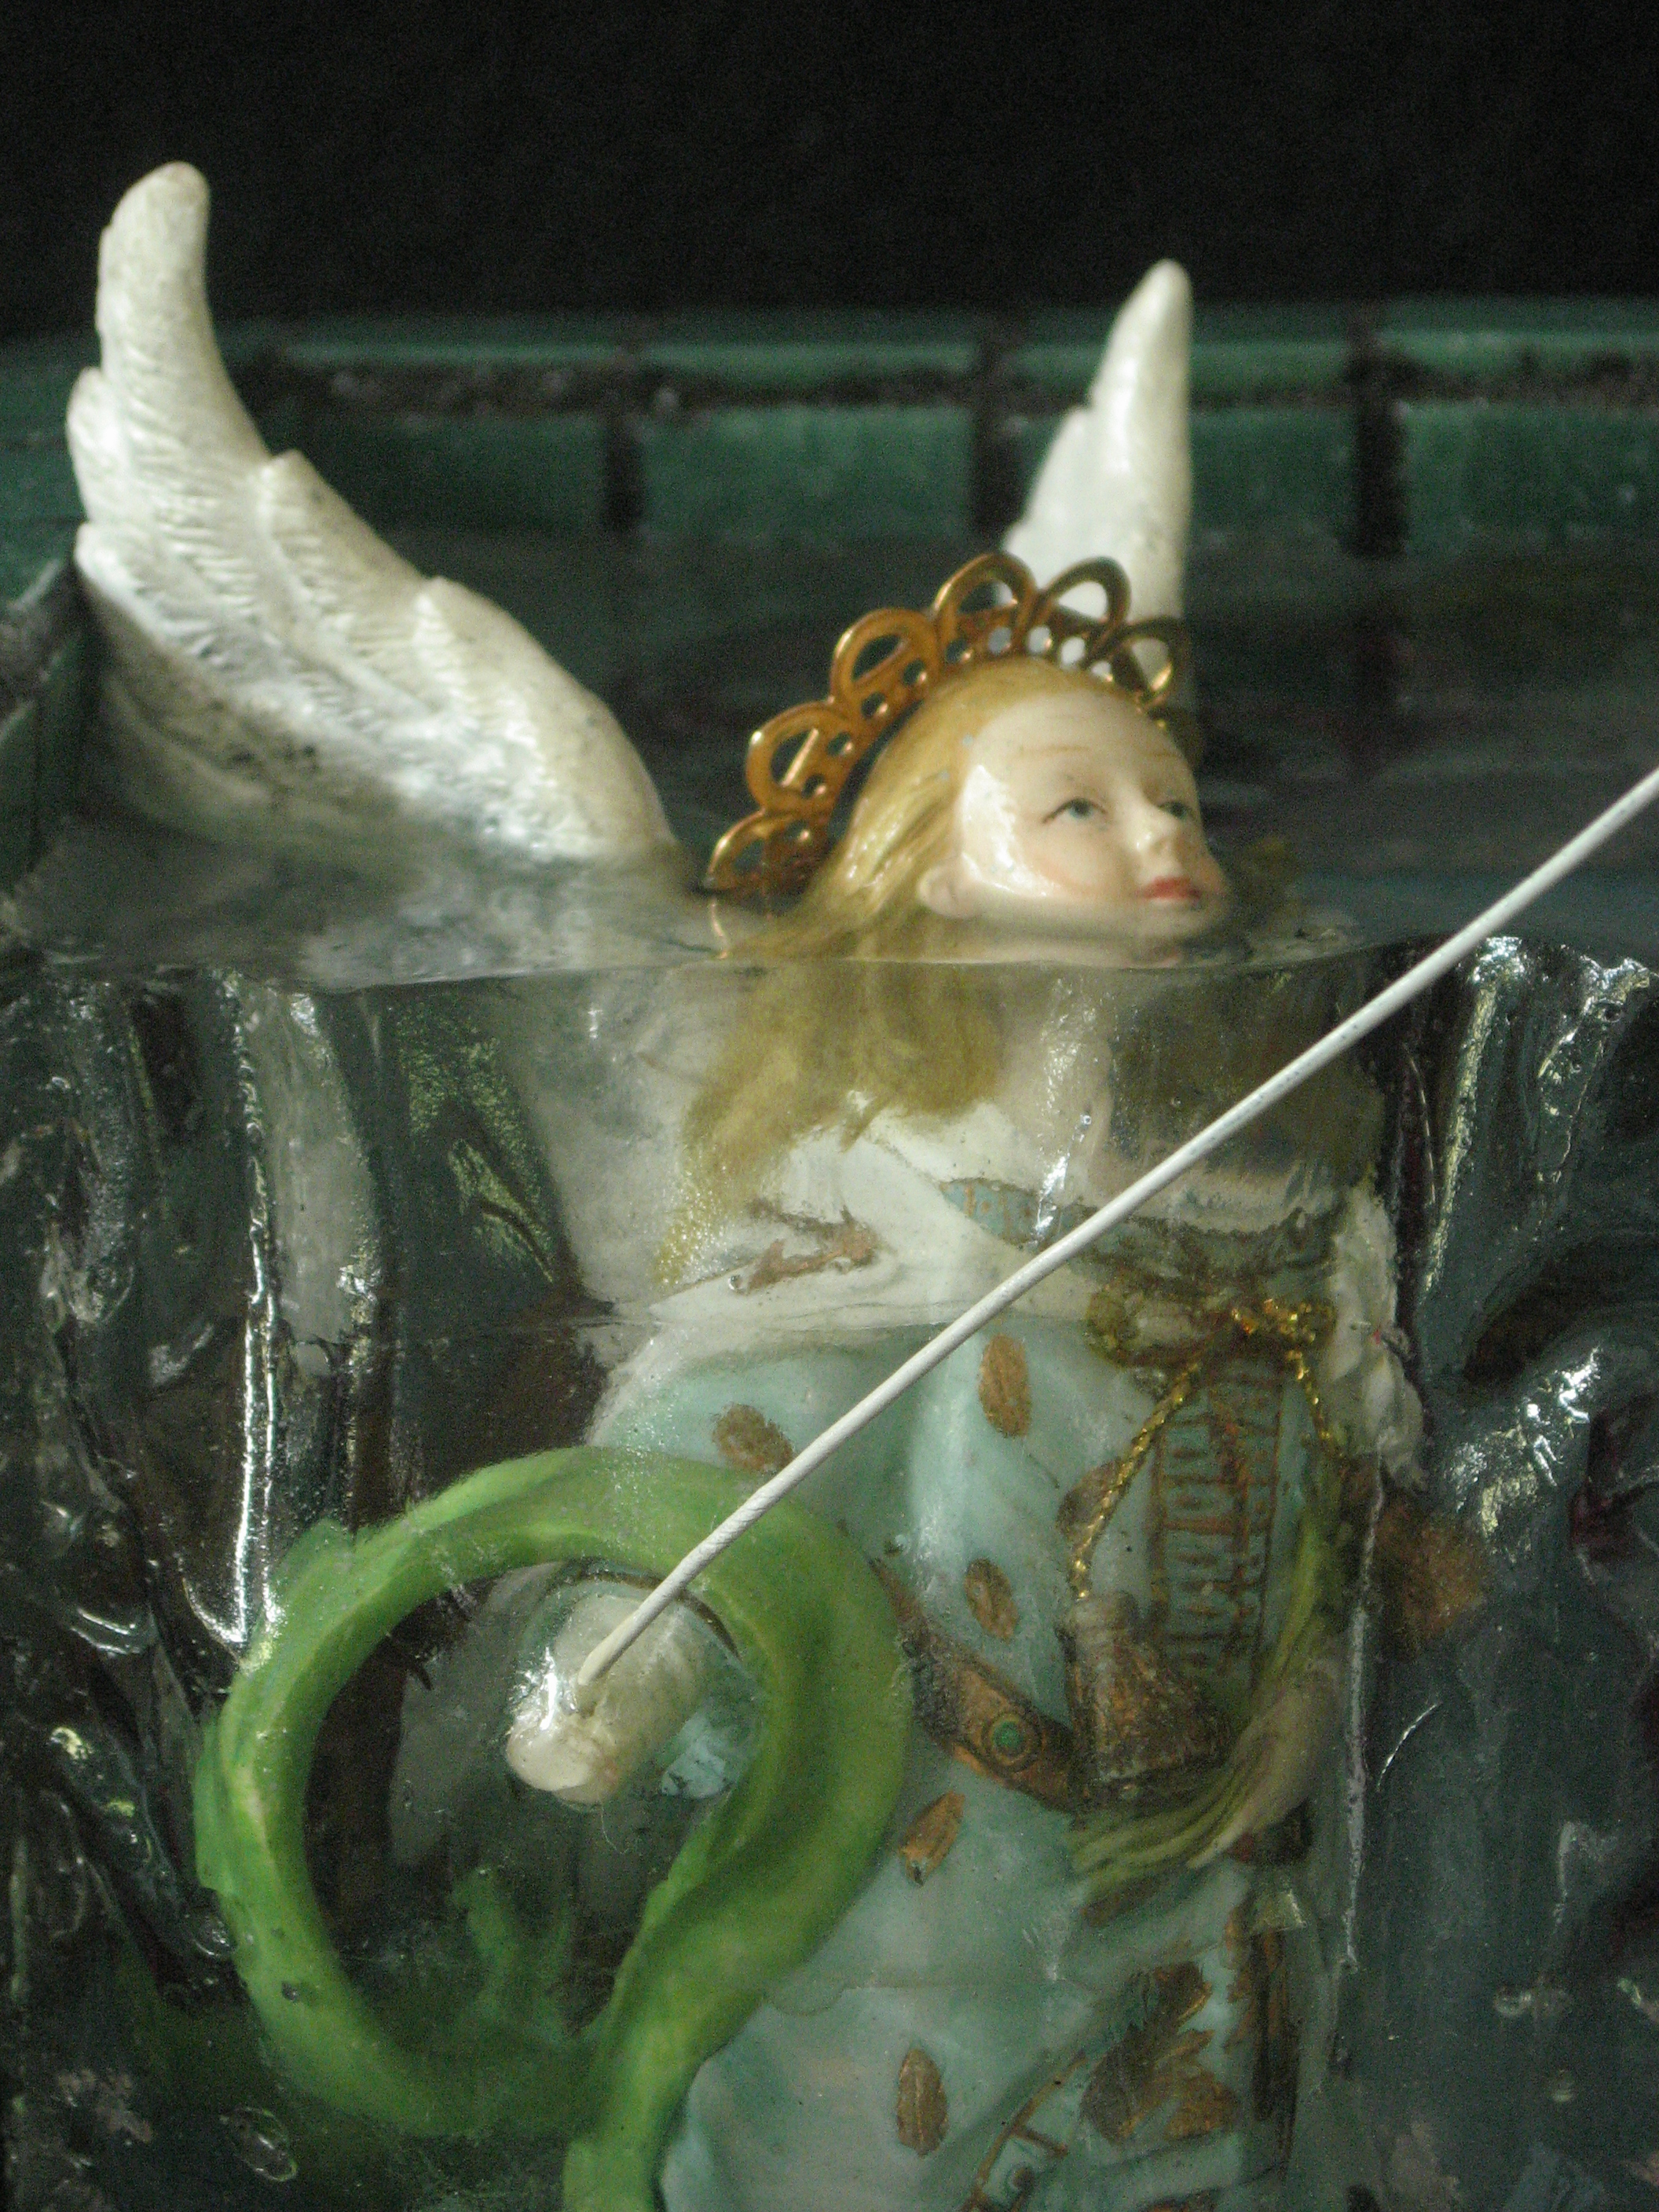 ESCAPE, close up of angel